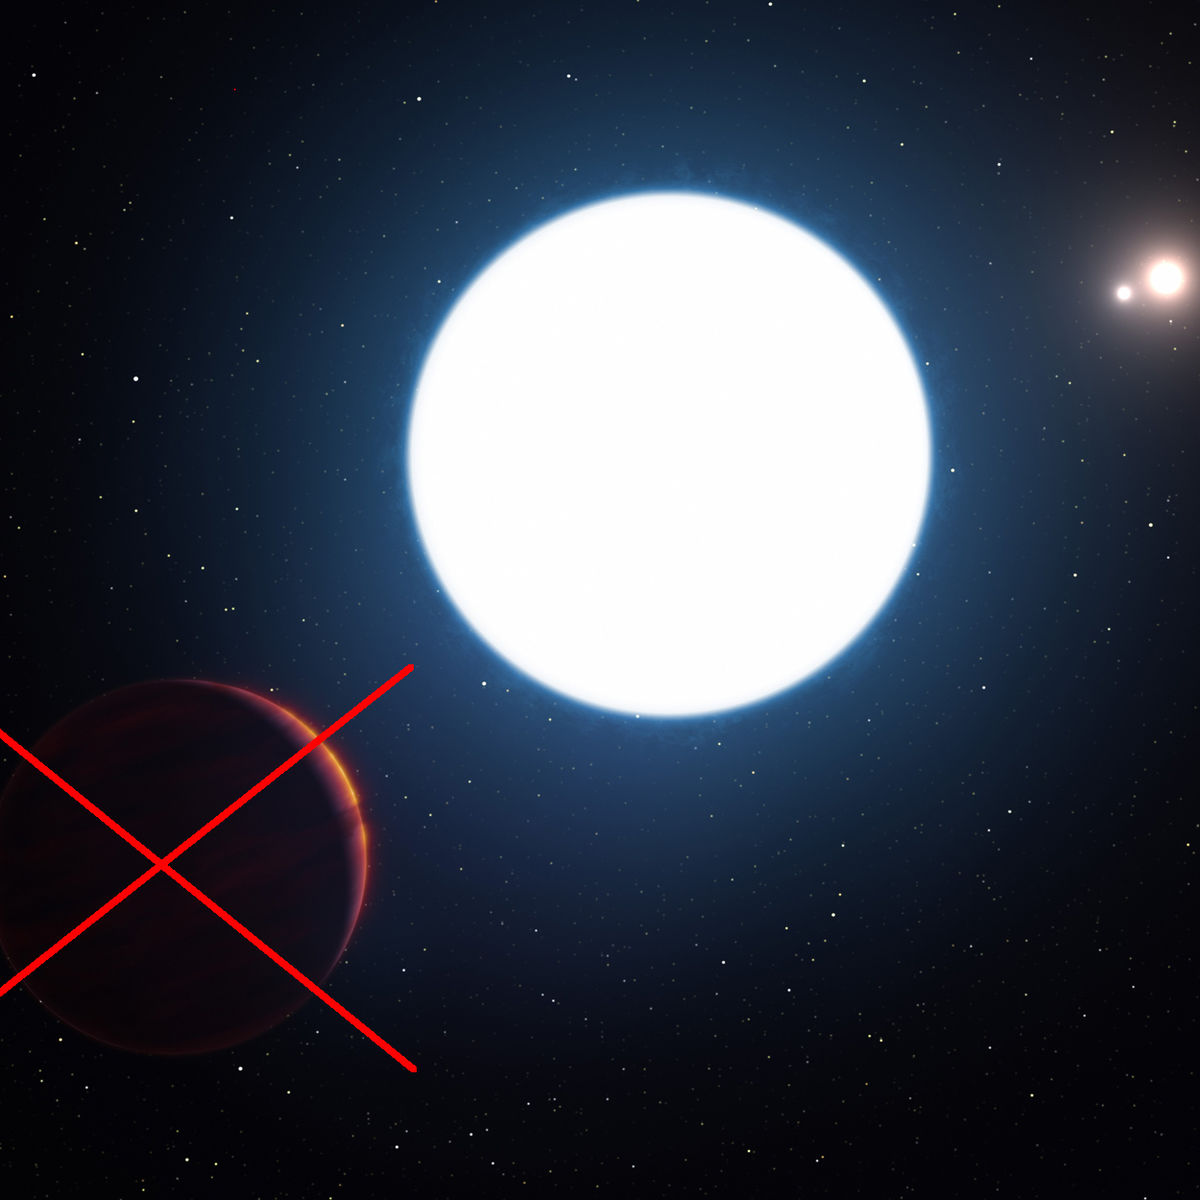 Sadly, this is not to be: HD 131399Ab is almost certainly not a planet. Credit:ESO/L. Calçada/M. Kornmesser(adapted by Phil Plait)